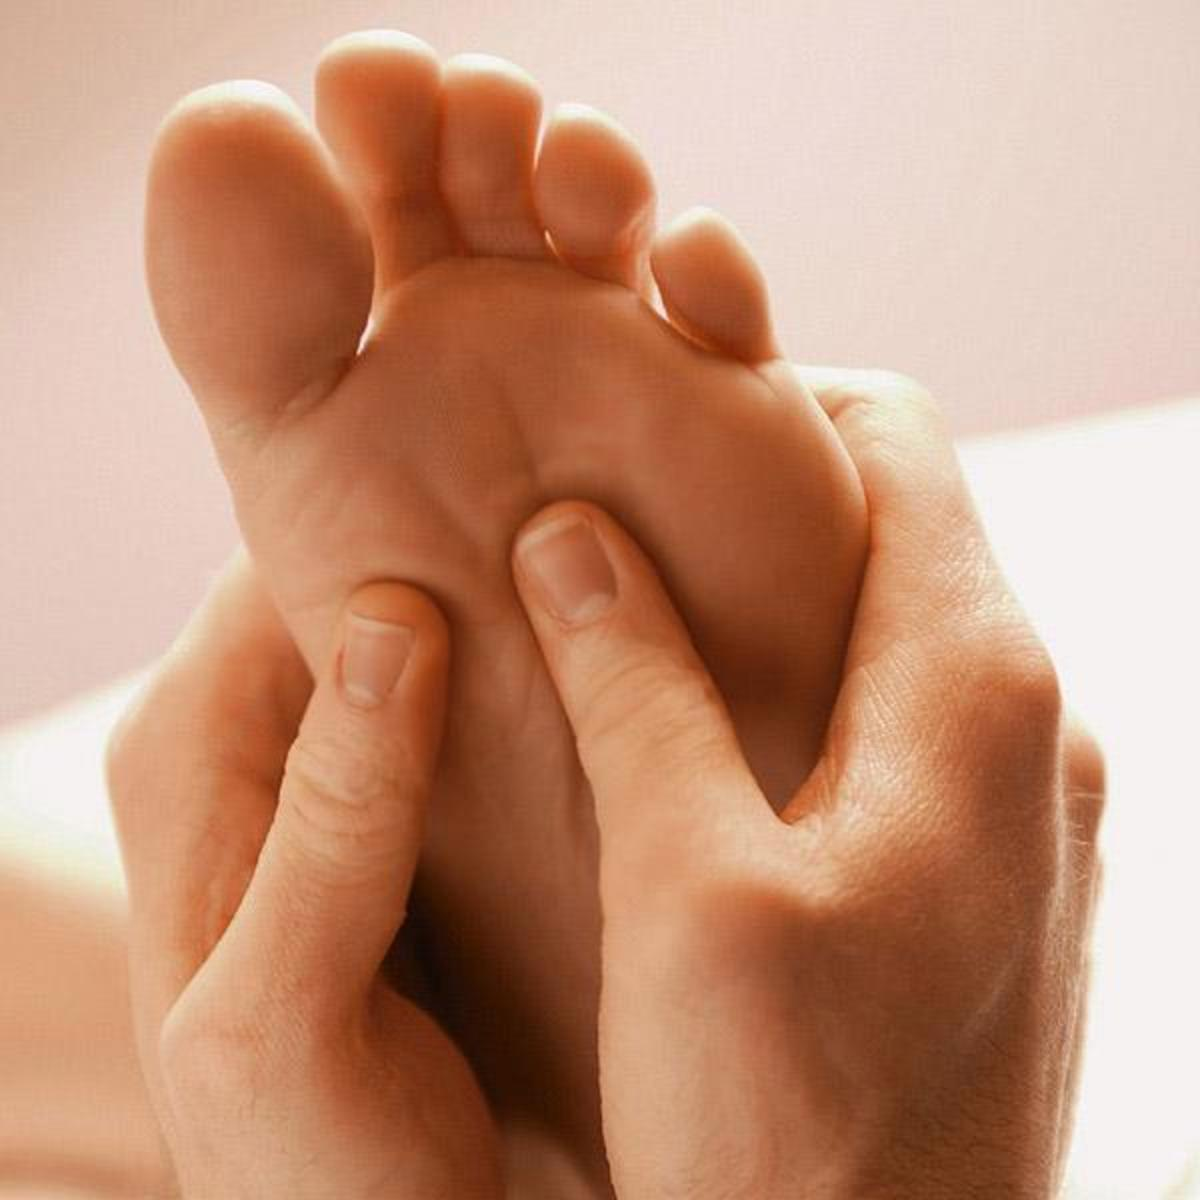 Do You Have Podophobia, the Fear of Bare Feet?